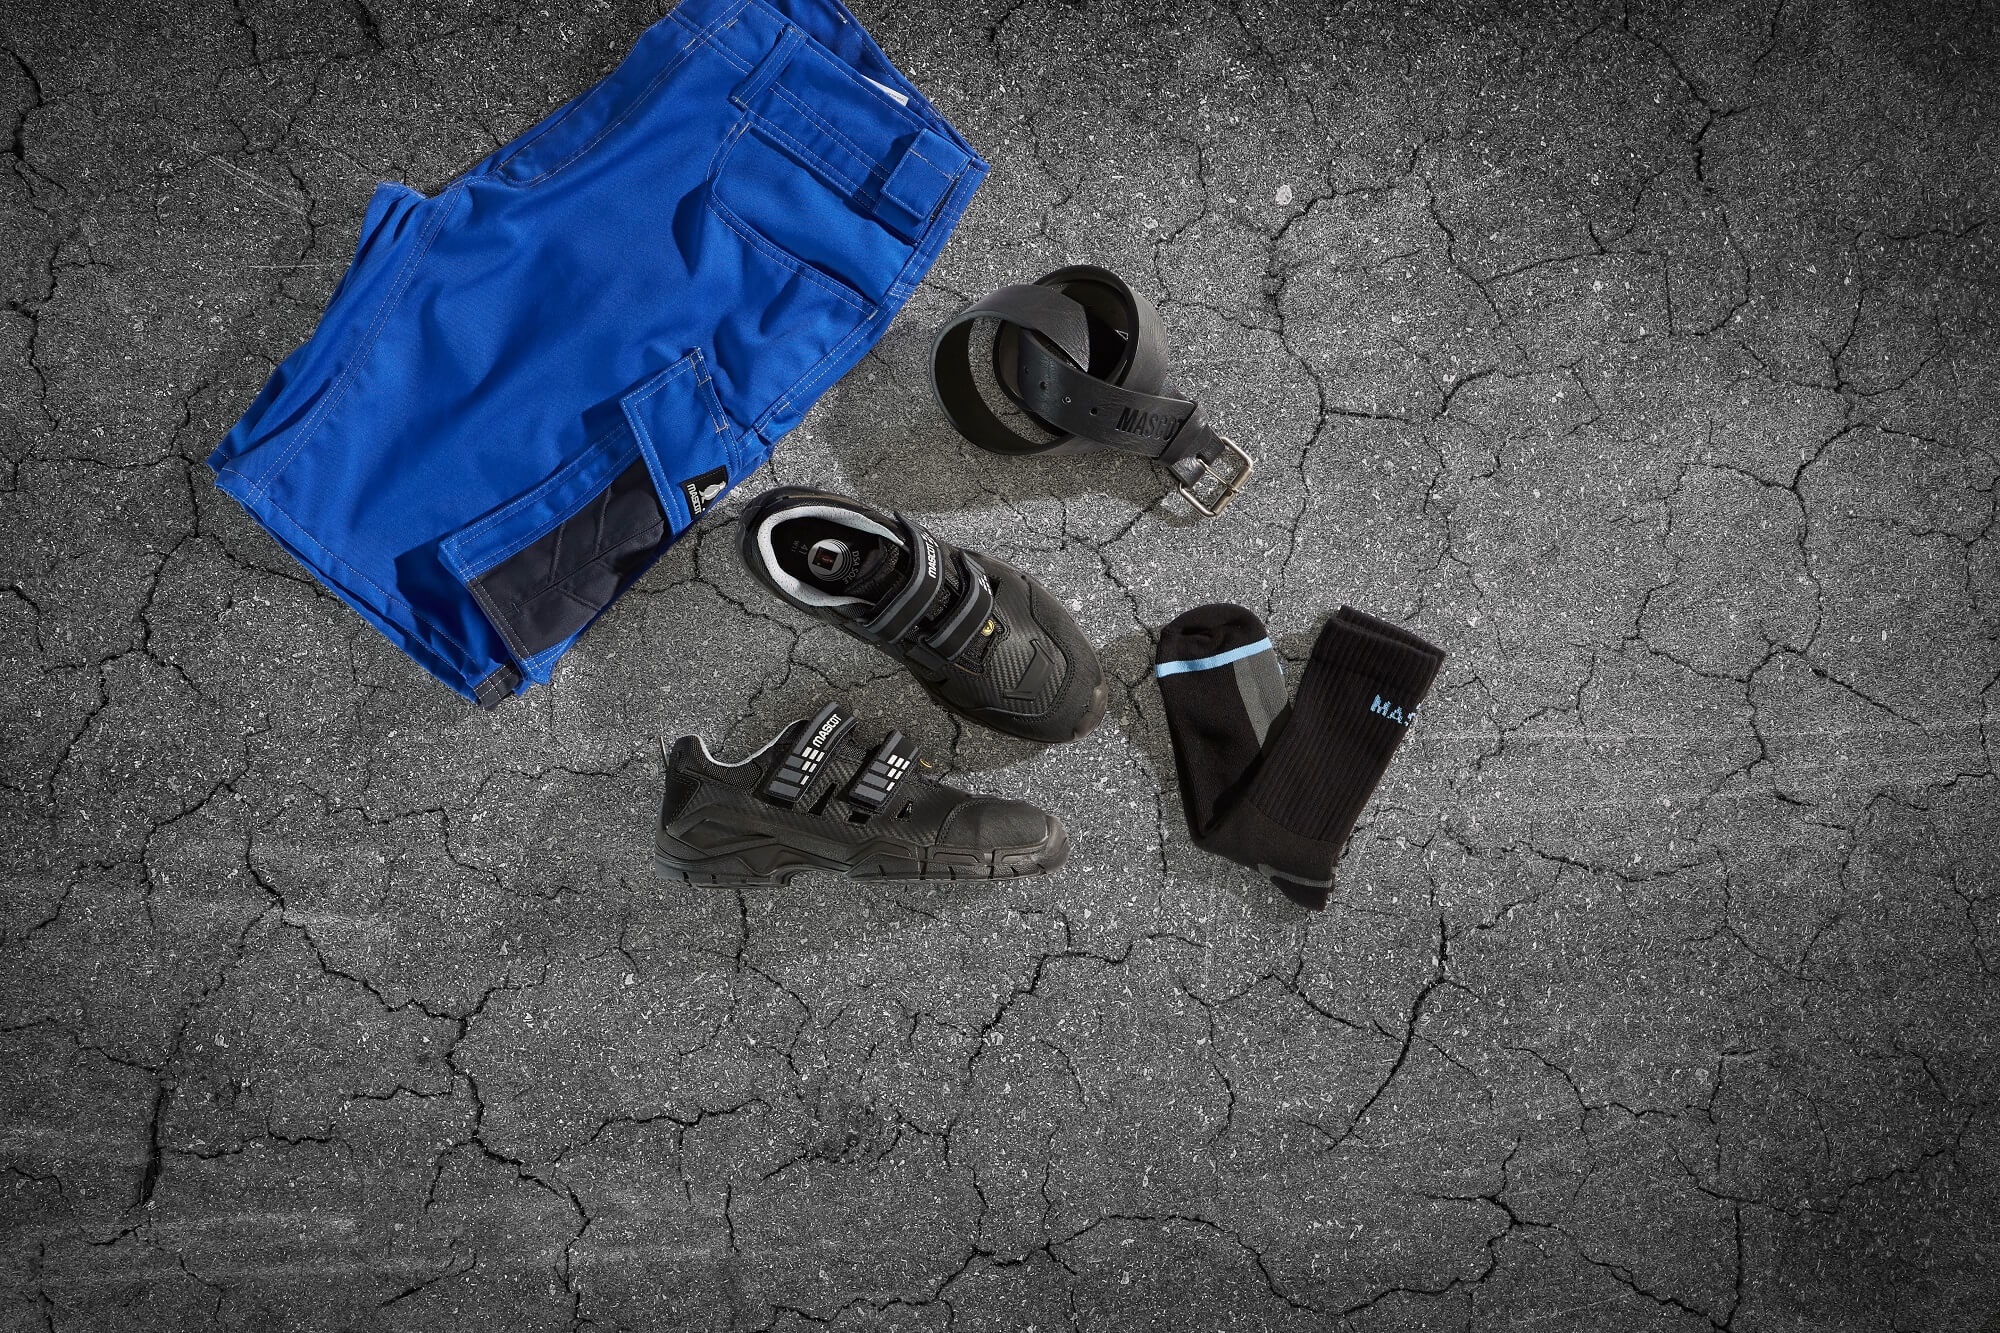 Work Trousers Royal blue & Safety Shoe - Collage